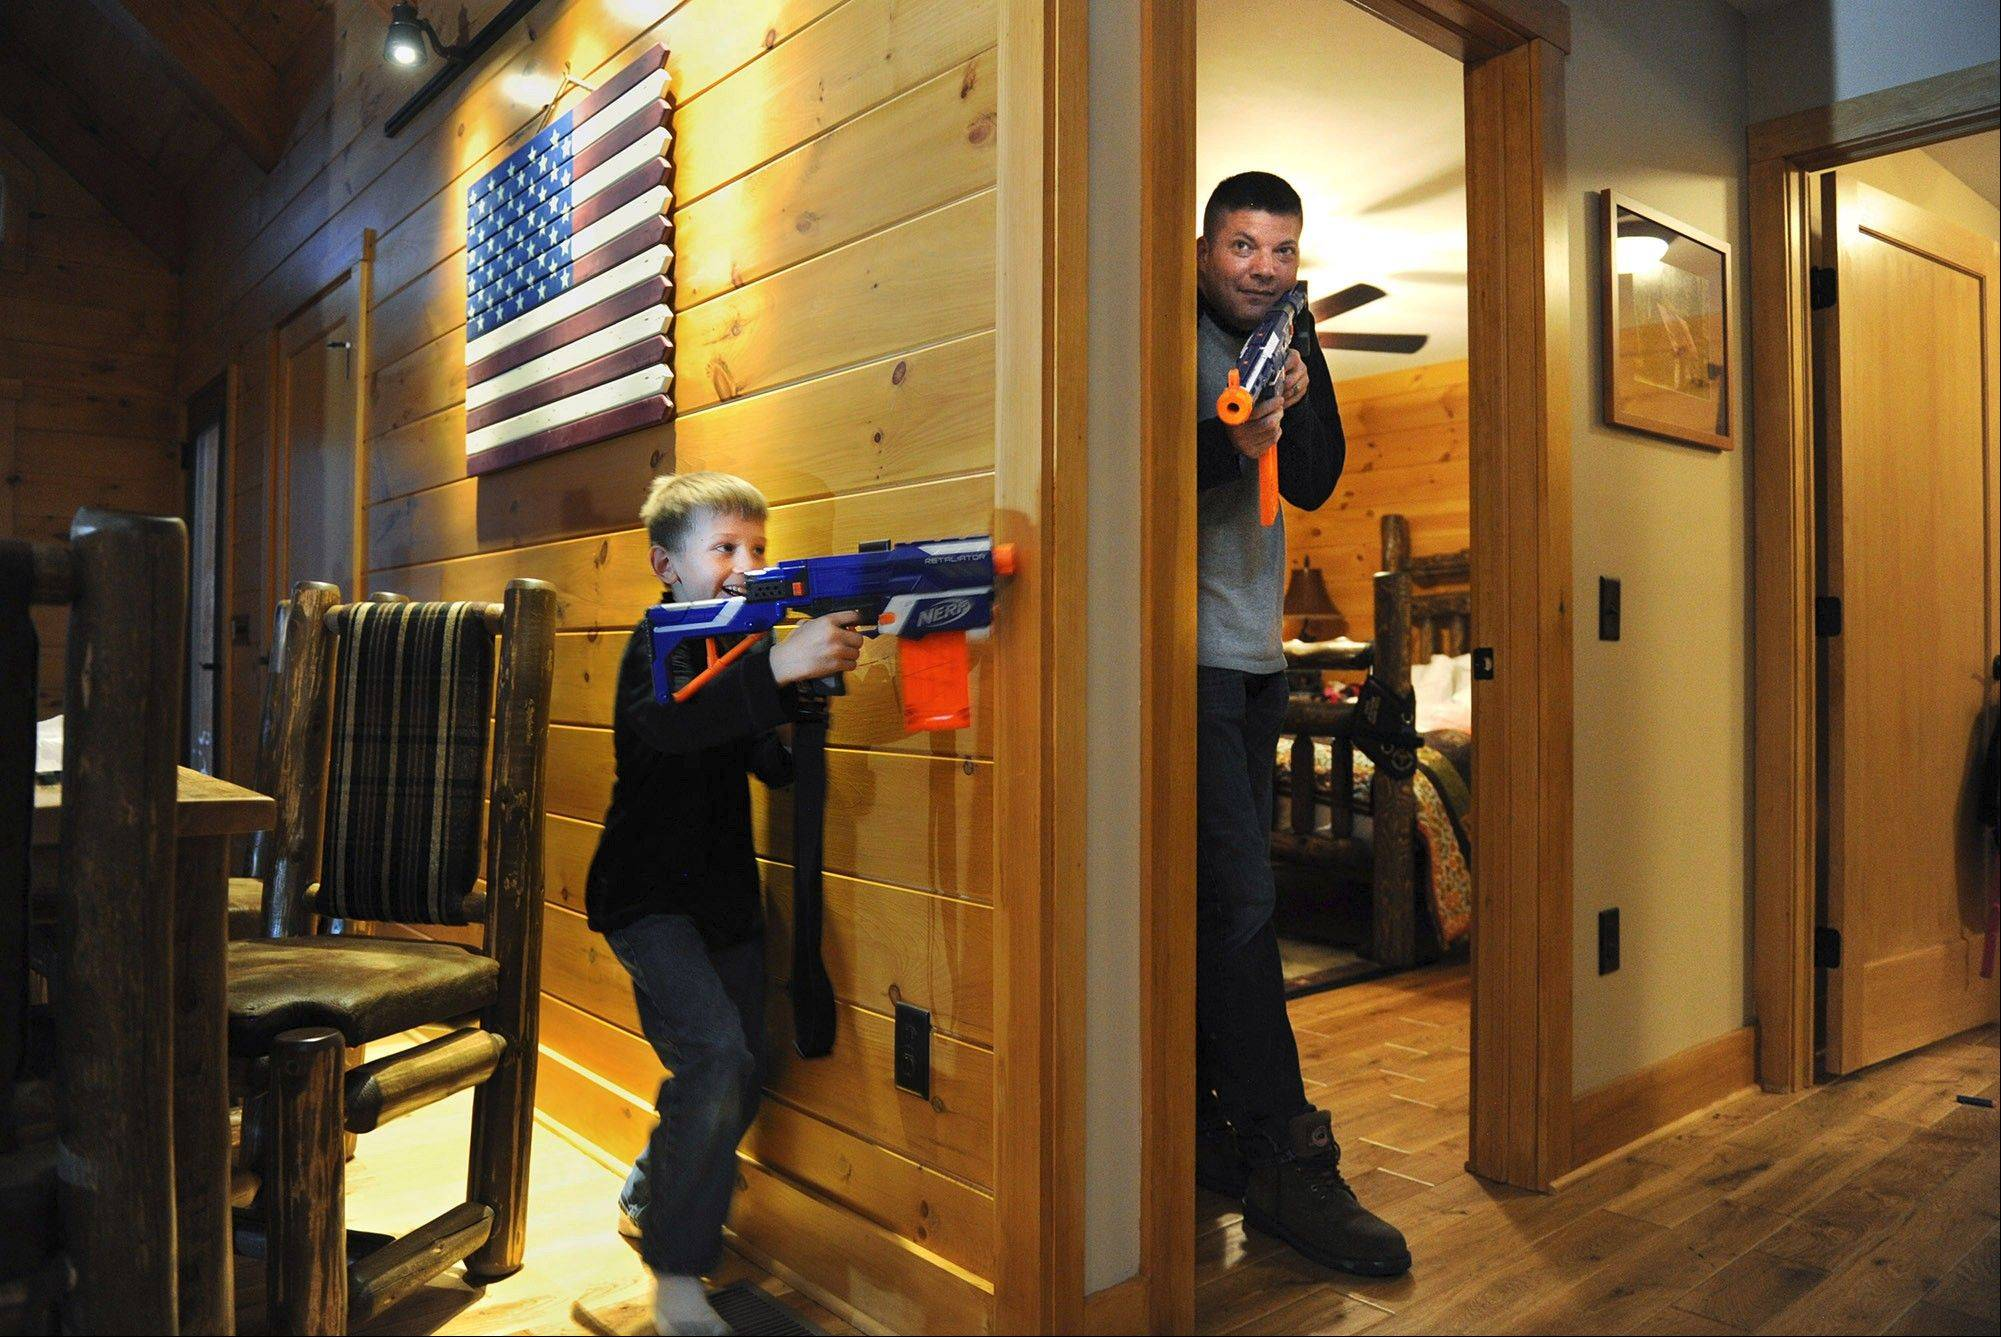 Cole Zajdel, 8, left, hopes to get the drop on his stepfather, Matt Kazee, right, in a Nerf gun game at Boulder Crest Retreat in Bluemont, Va. Kazee is in the Navy; his wife and Cole Zajdel's mother, Liza Kazee, was in the Air Force.